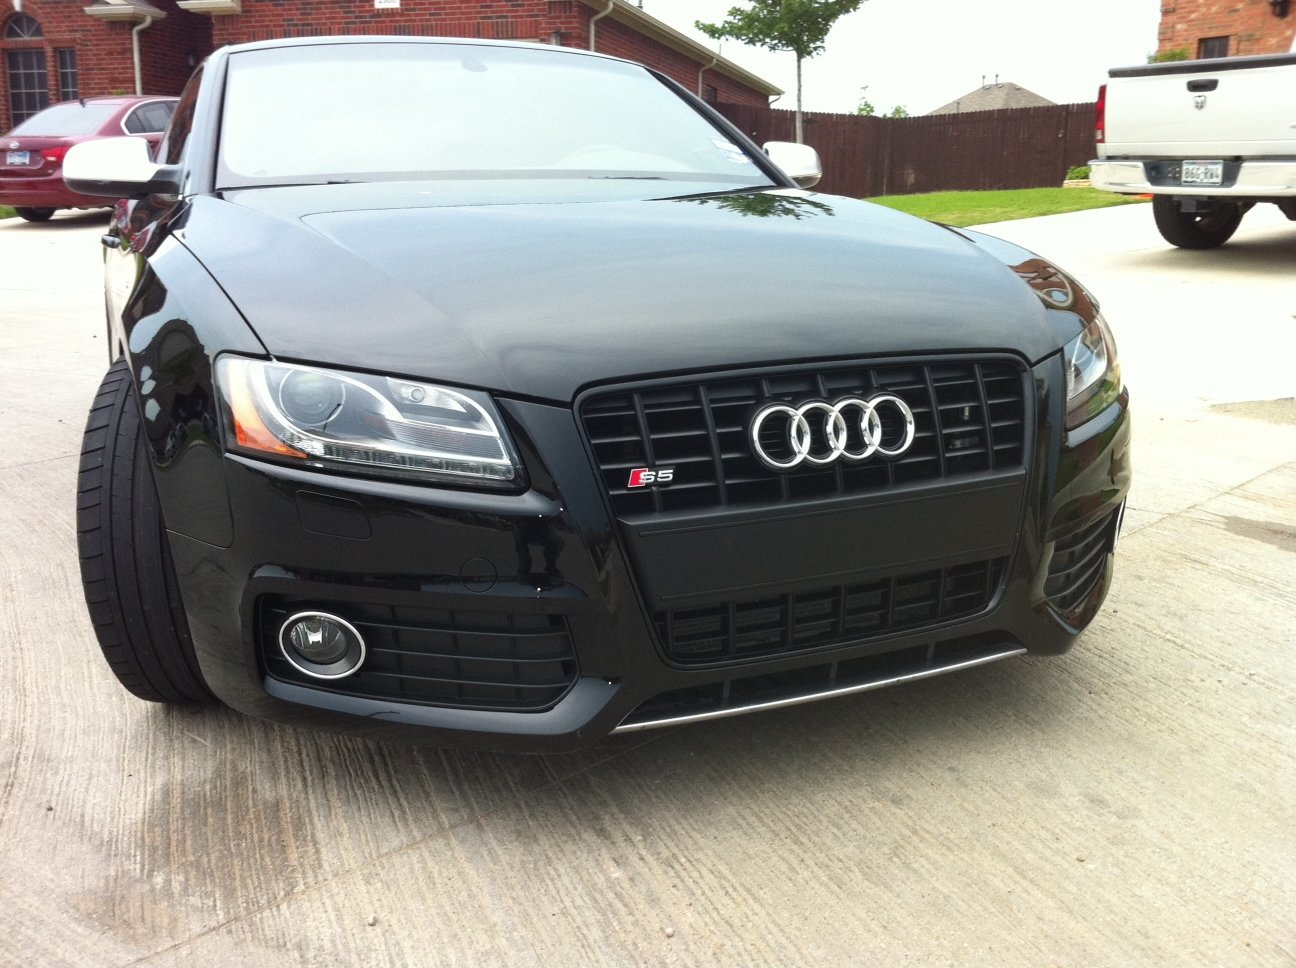 RS5 Grille.... Gun Metal or Black on Black S5? - Audi A5 Forum ... on 2010 acura tsx grill, 2010 dodge challenger grill, 2010 ford edge grill, 2010 acura mdx grill, 2010 ford mustang grill, 2010 cadillac cts grill, 2010 toyota camry grill, 2010 nissan murano grill, 2010 honda insight grill, 2010 gmc terrain grill, 2010 chrysler 300 grill,